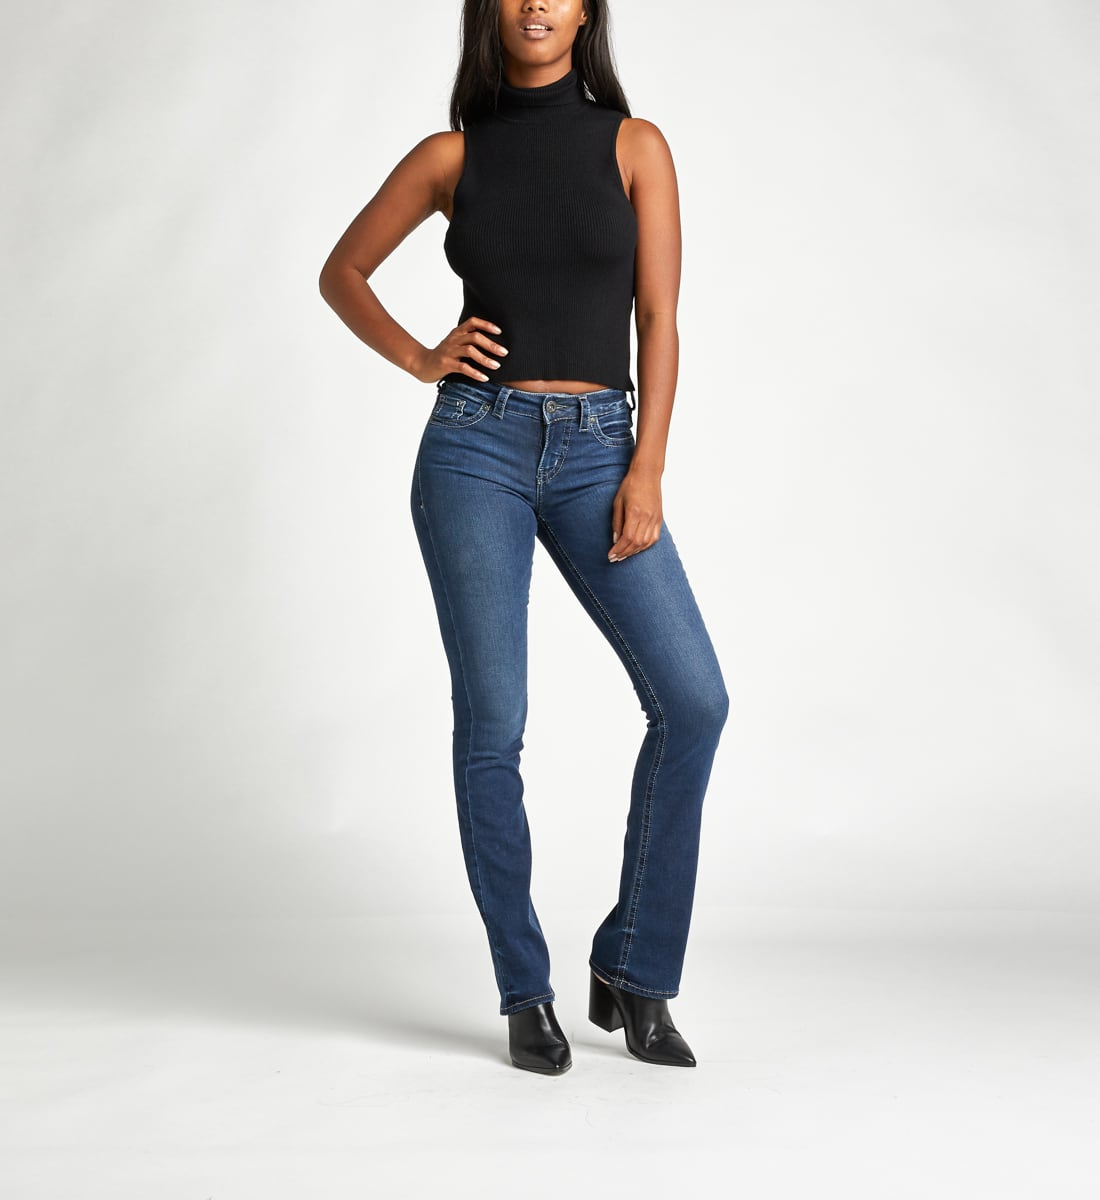 Silver Jeans Co. Clearance: Women's Aiko Mid Rise Slim Bootcut $20.97, Men's Konrad Slim Light Wash $26.97 and more + Free S/h